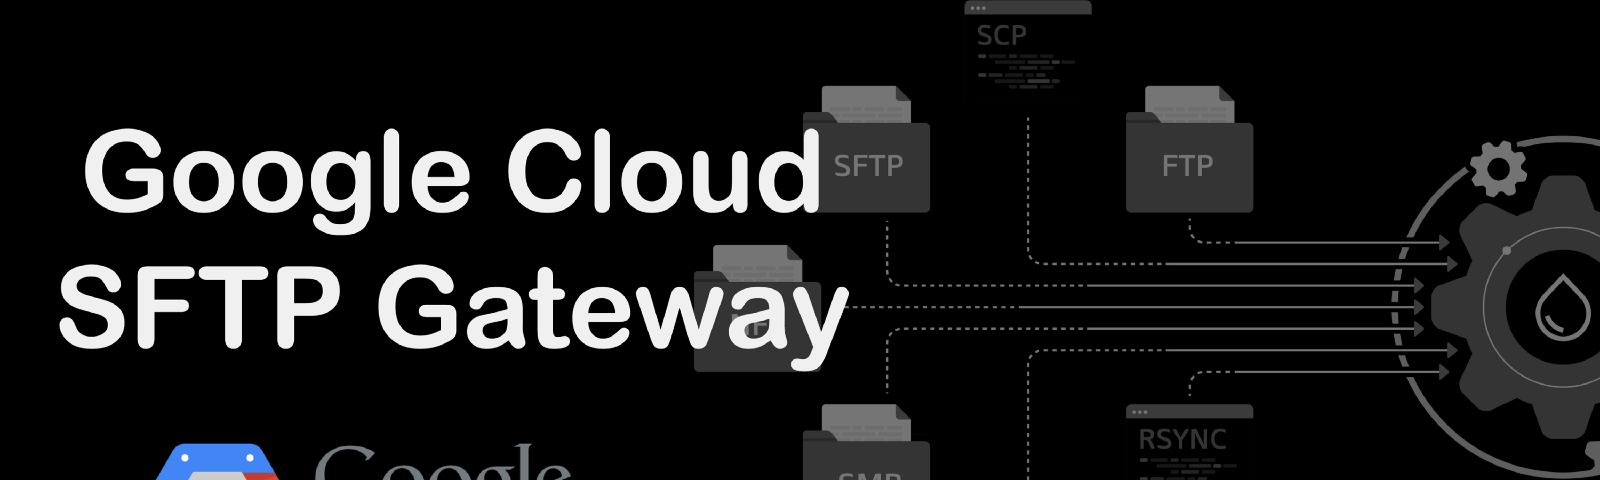 Google Cloud SFTP/FTP